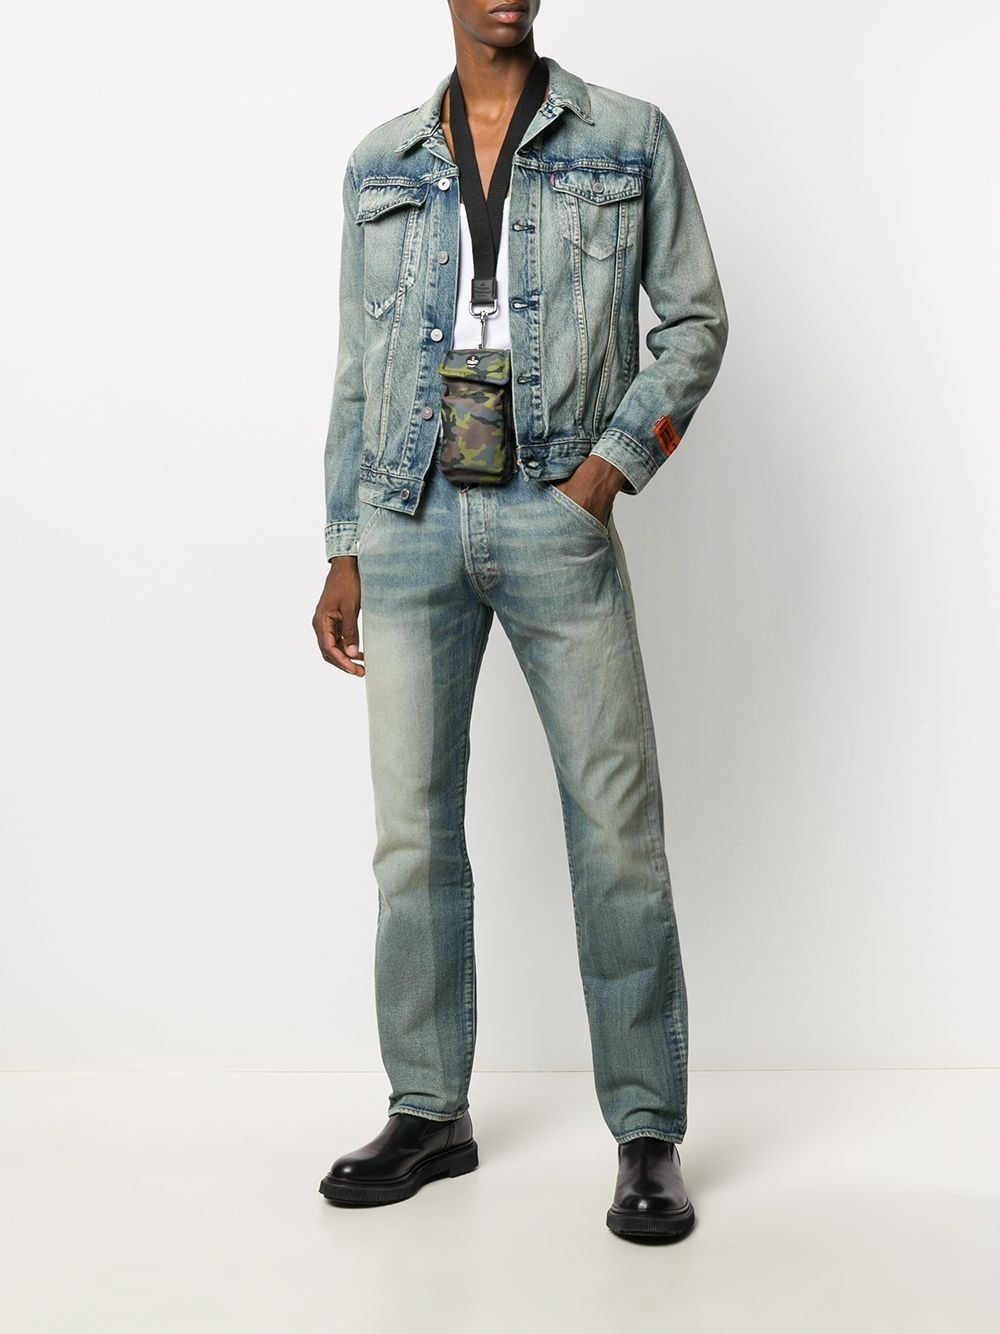 HERON PRESTON Levi's Trucker Jacket - Maison De Fashion